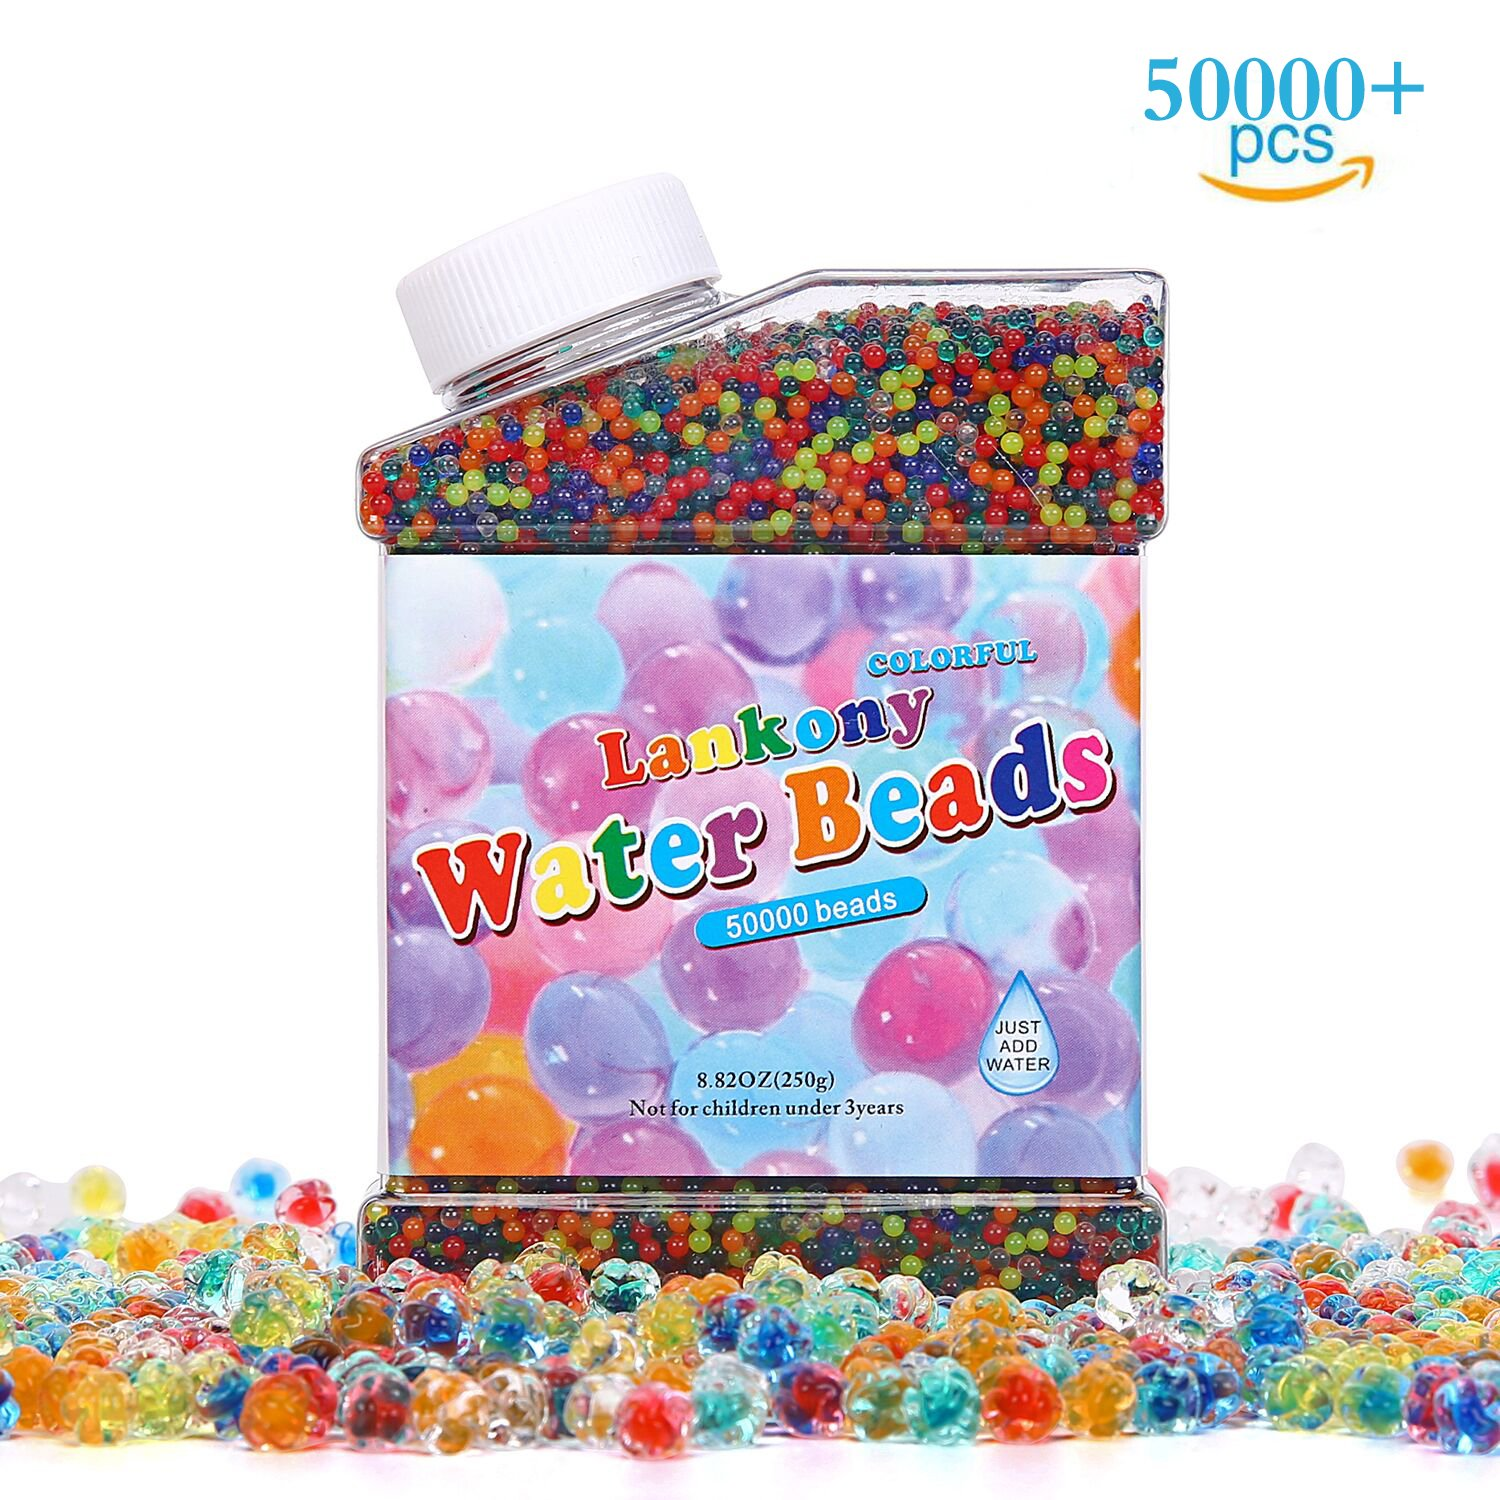 Lankony Water Beads Pack 50000 Beads Rainbow Mix Jelly Water Growing Balls for Kids Tactile Sensory Toys Vases Plants Party Wedding and Home Decoration